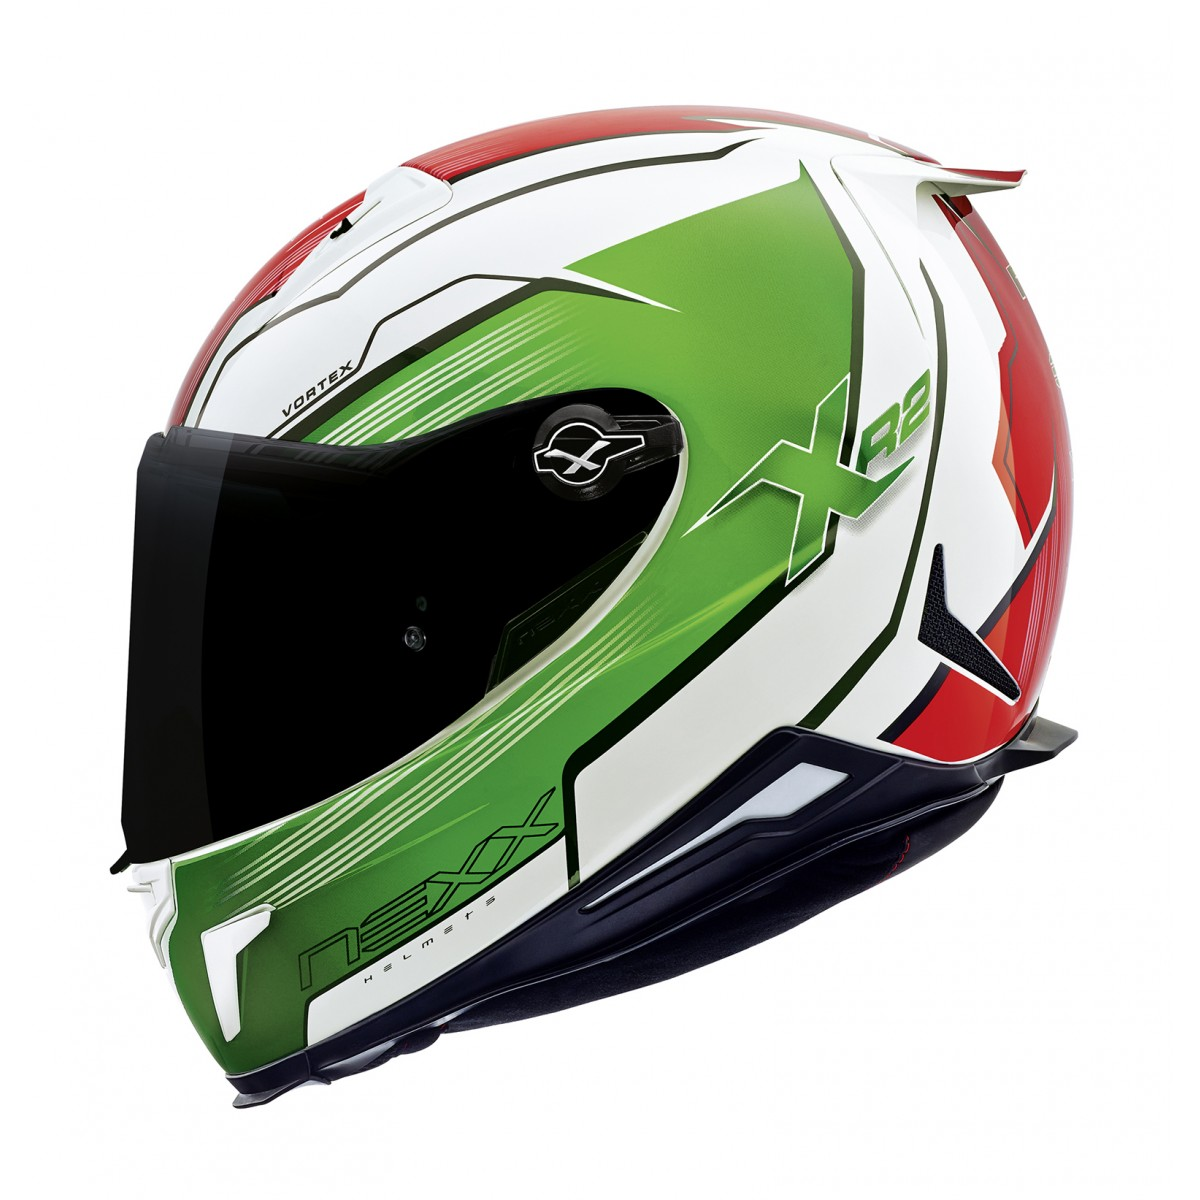 Capacete Nexx XR2 Vortex Verde Itália Tri-Composto - BLACK FRIDAY